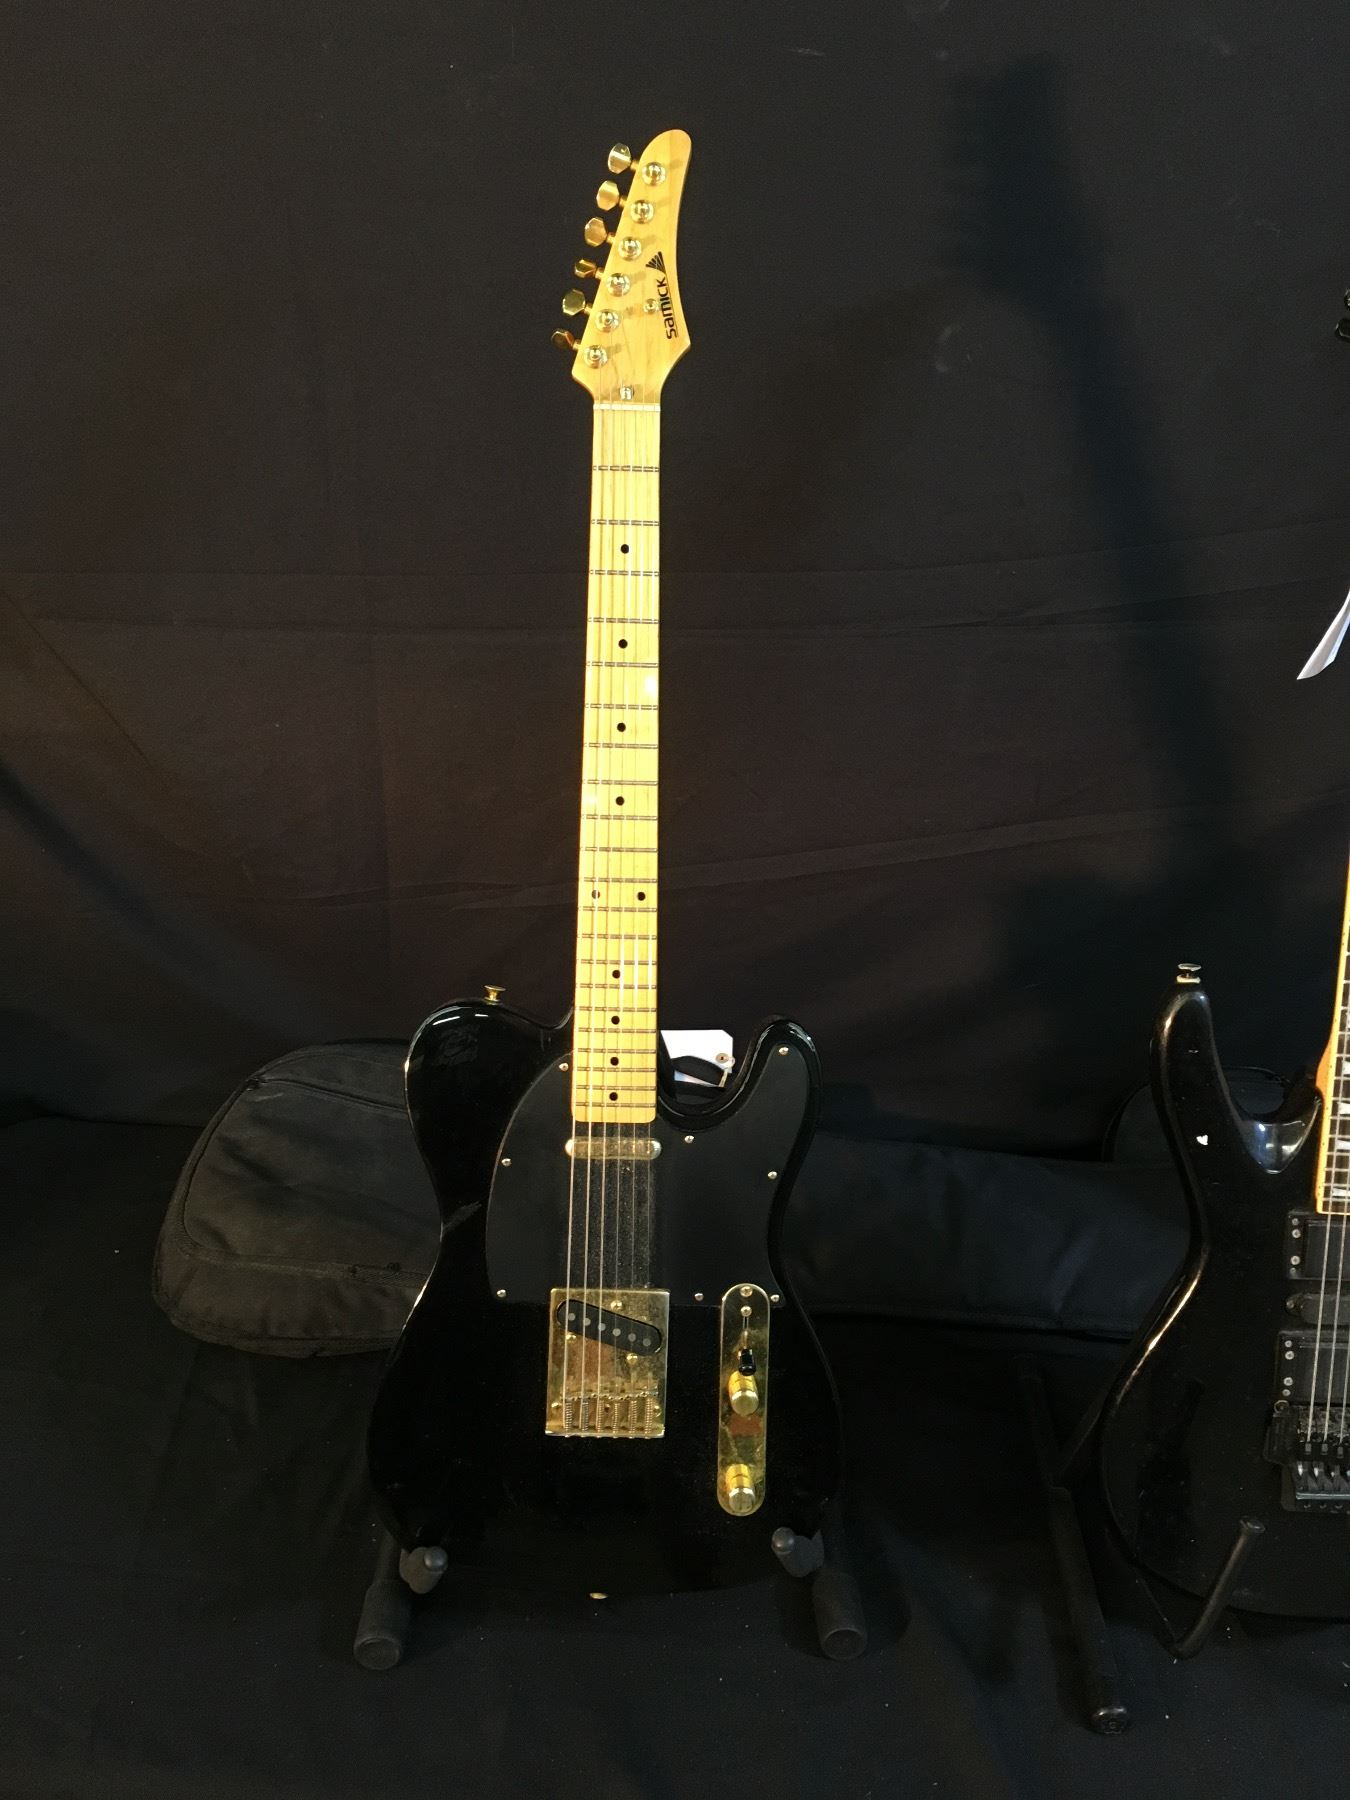 medium resolution of  image 4 3 guitars squier 5 string jazz bass with soft shell case